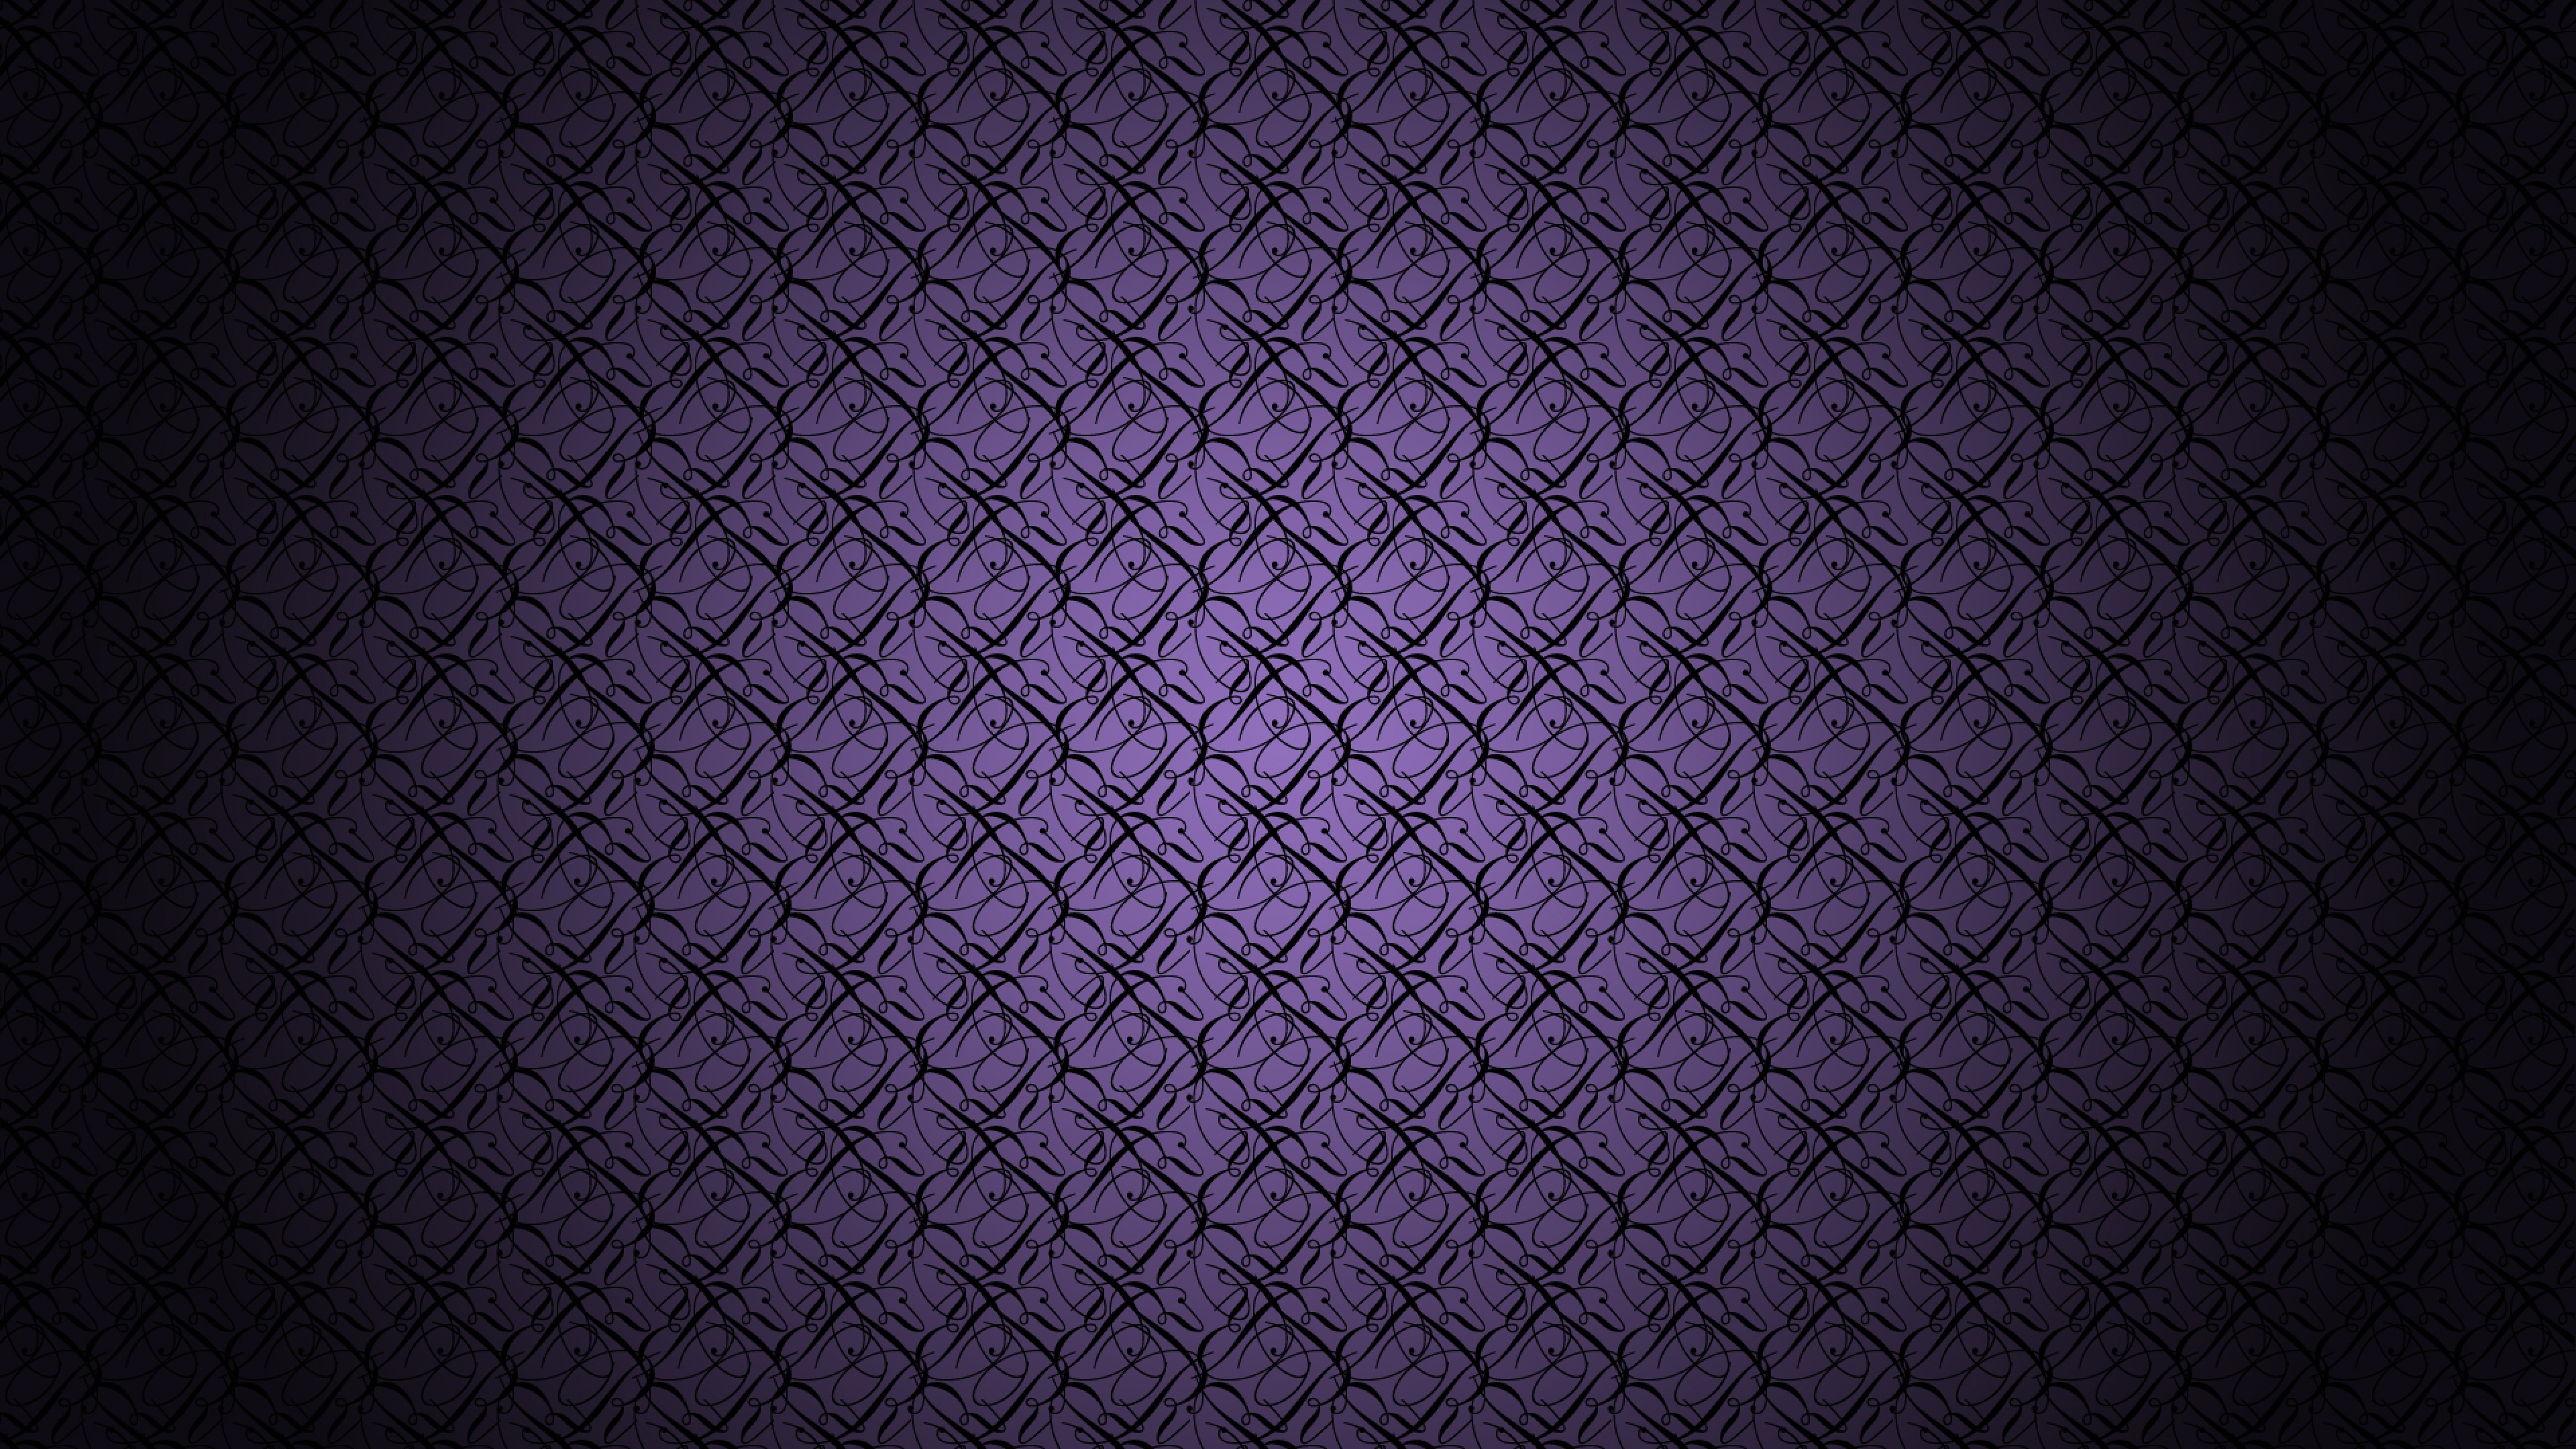 Pattern background wallpaper 3840x2160 81254 for Dark pattern background